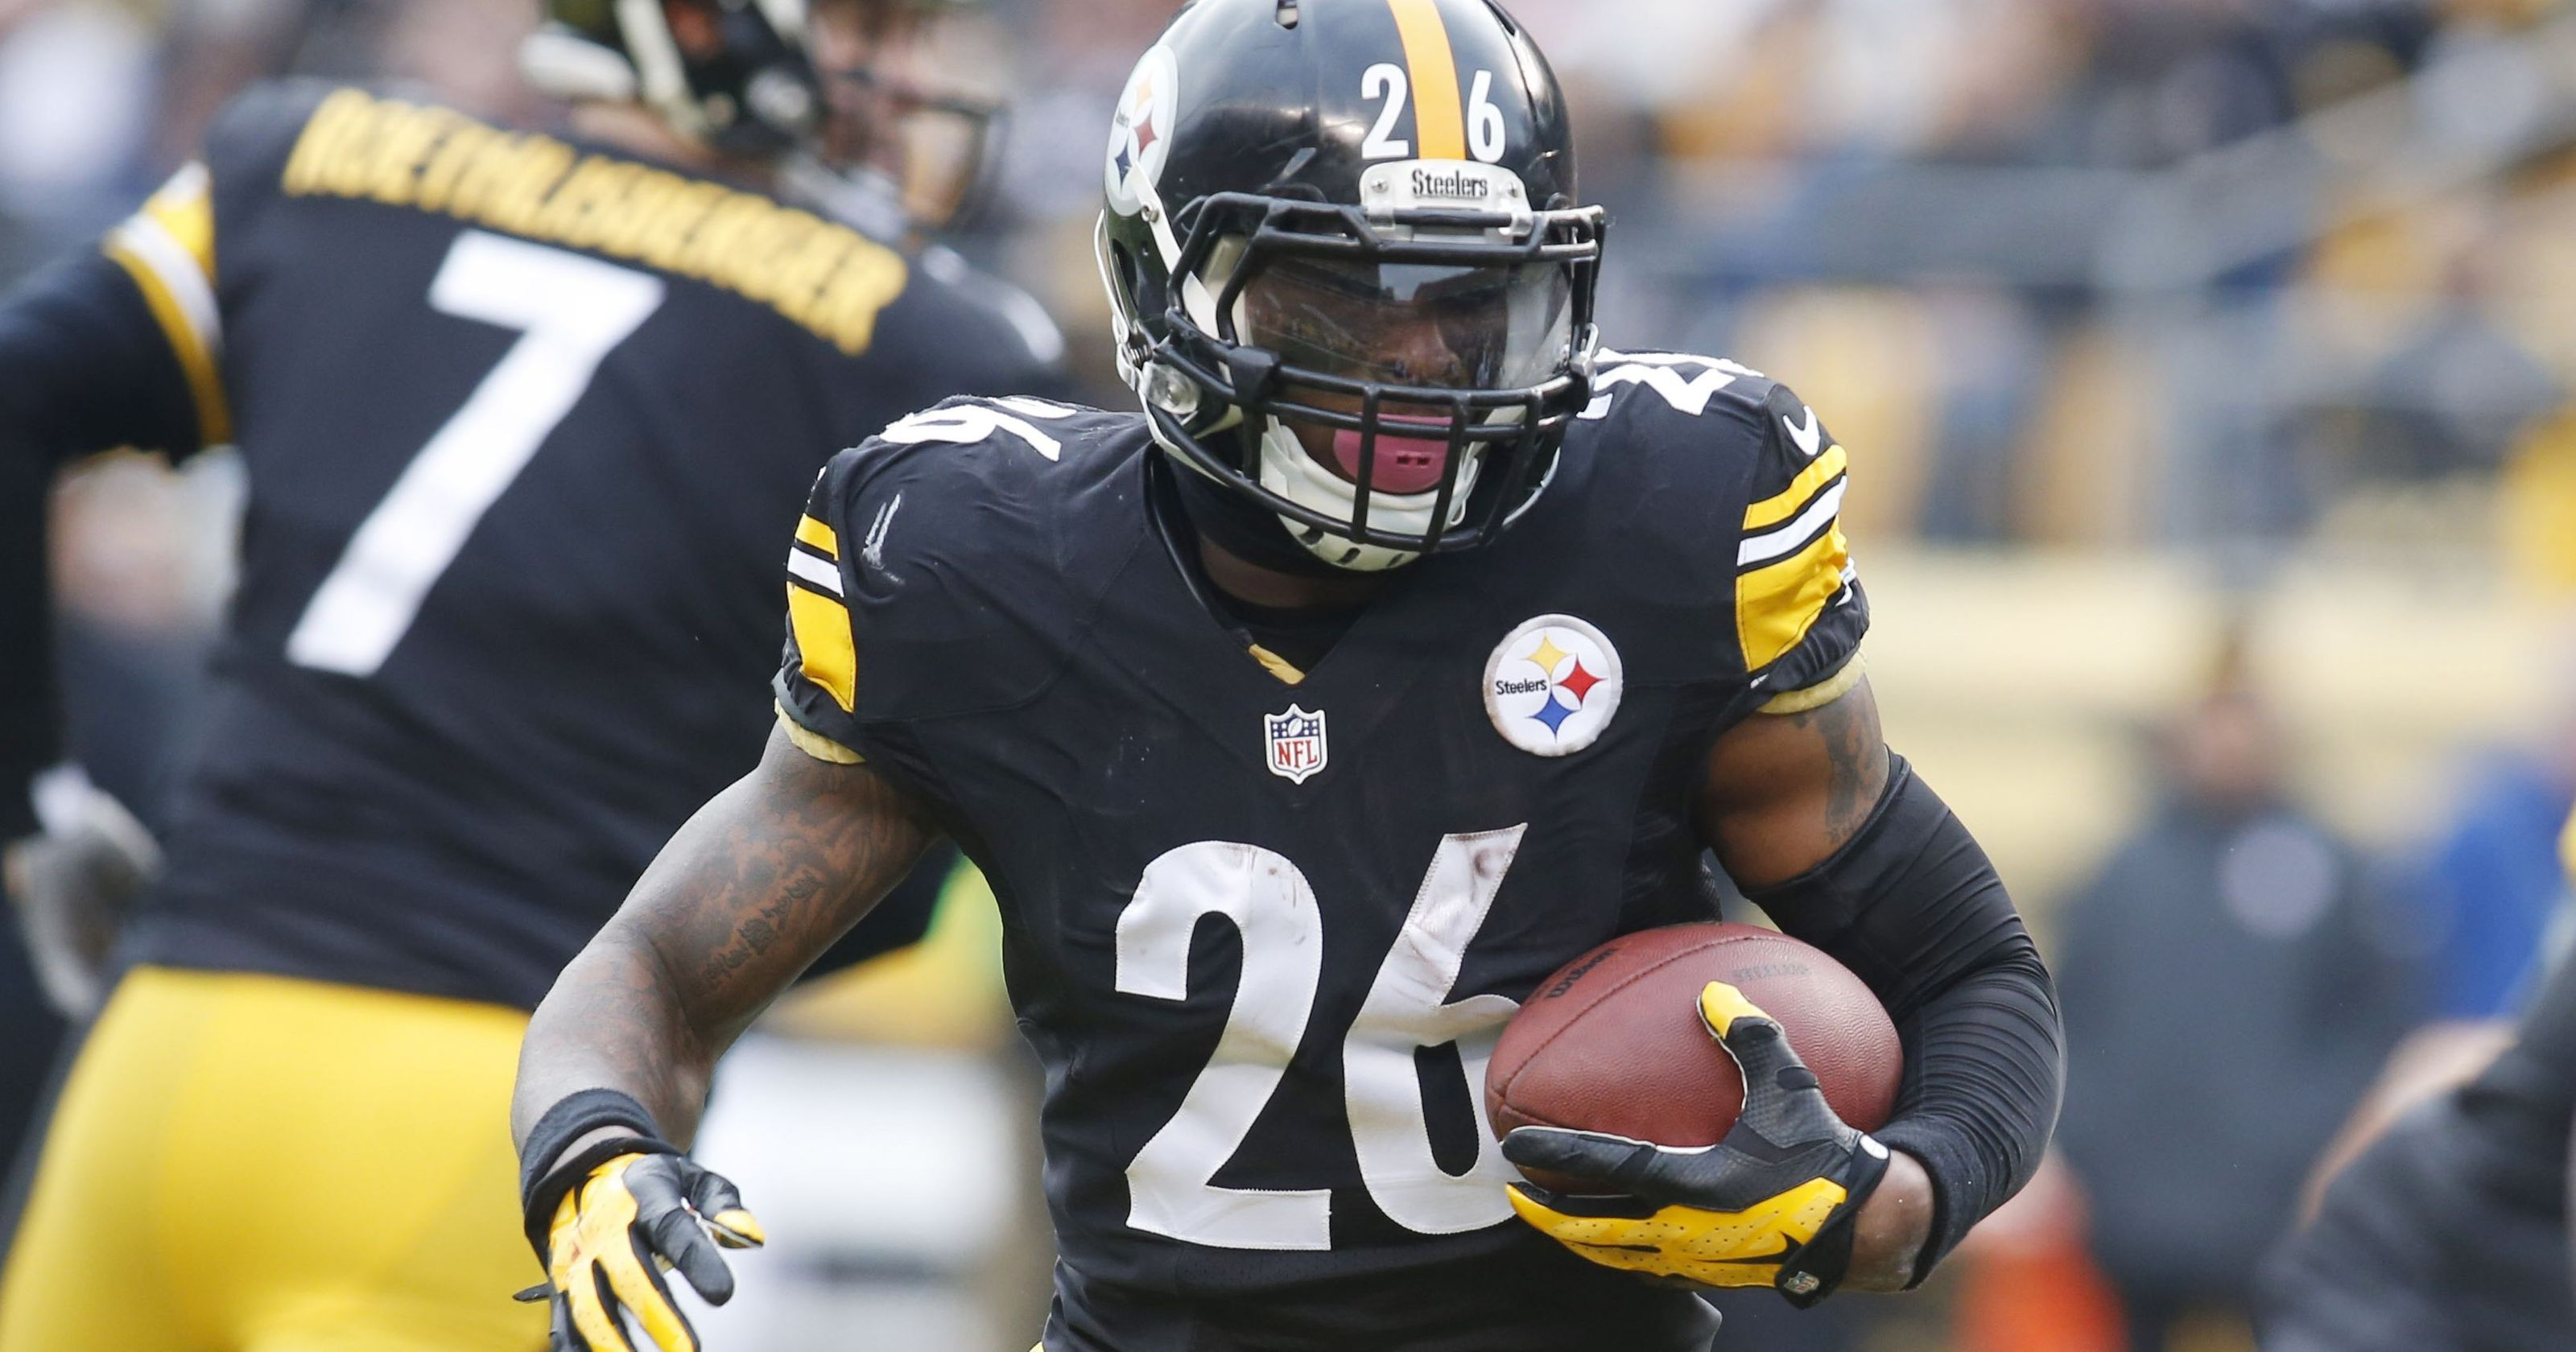 le'veon bell-new york jets-adam gase-gm fired-trade rumor